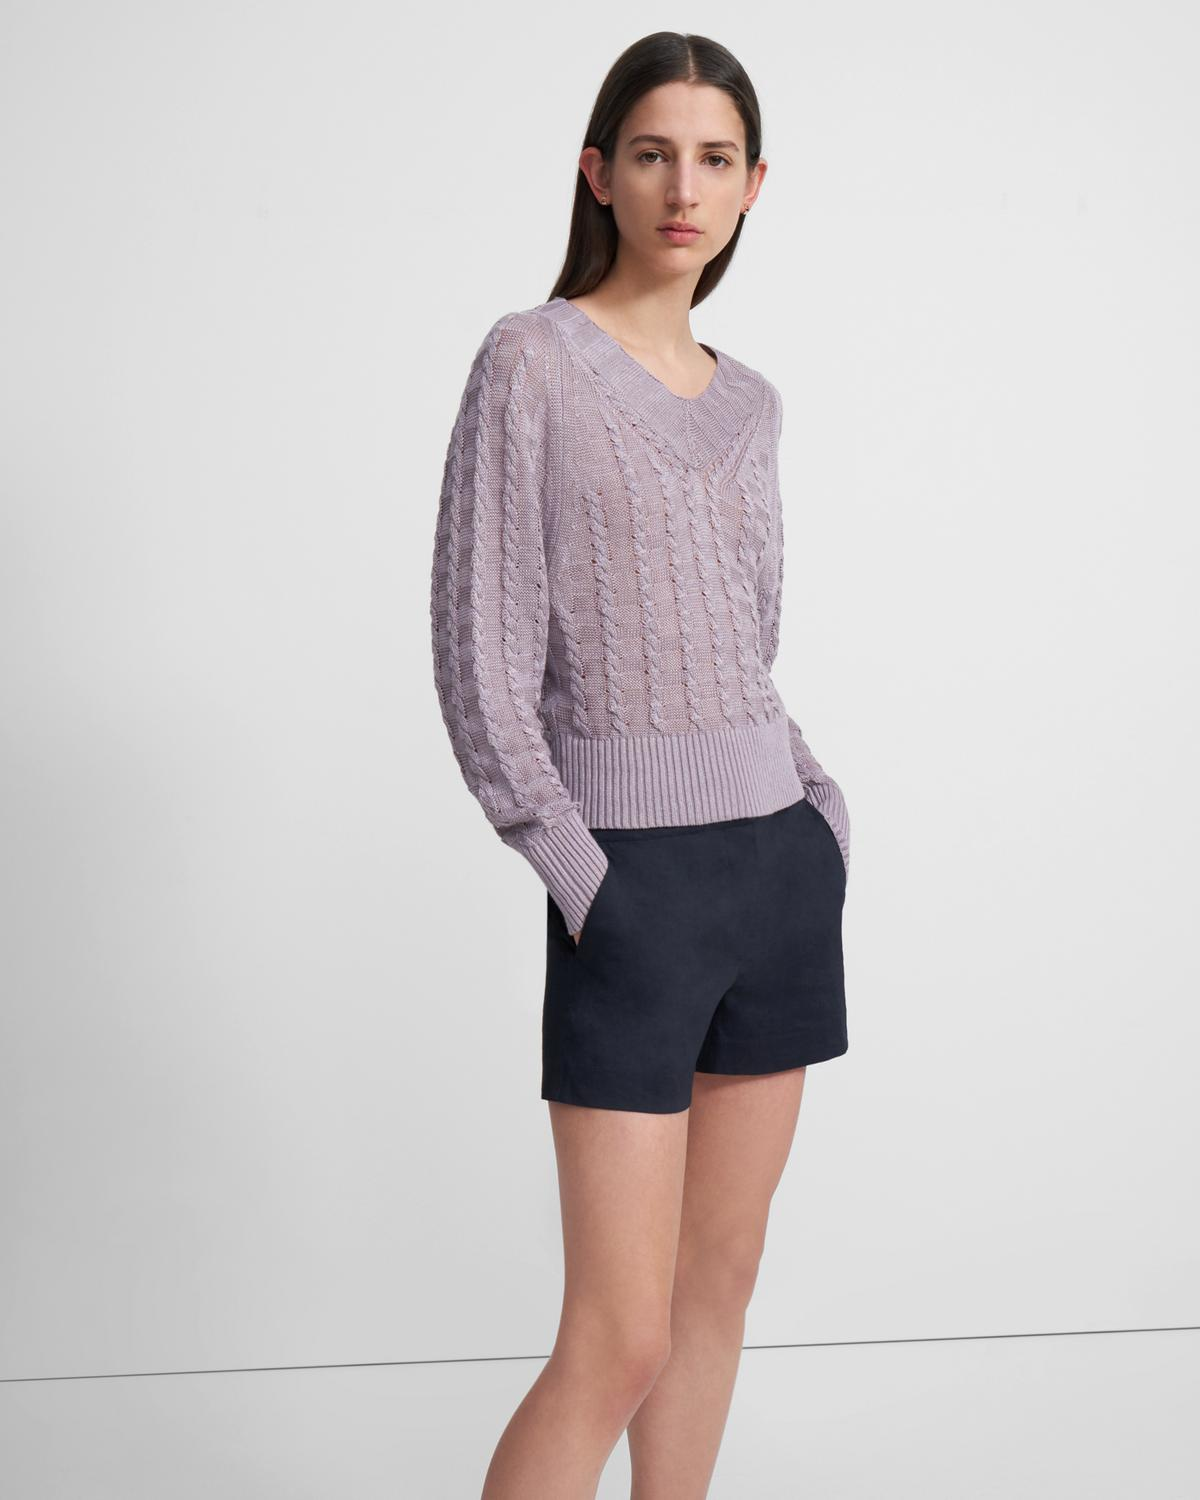 Textured V-Neck Sweater in Linen-Viscose